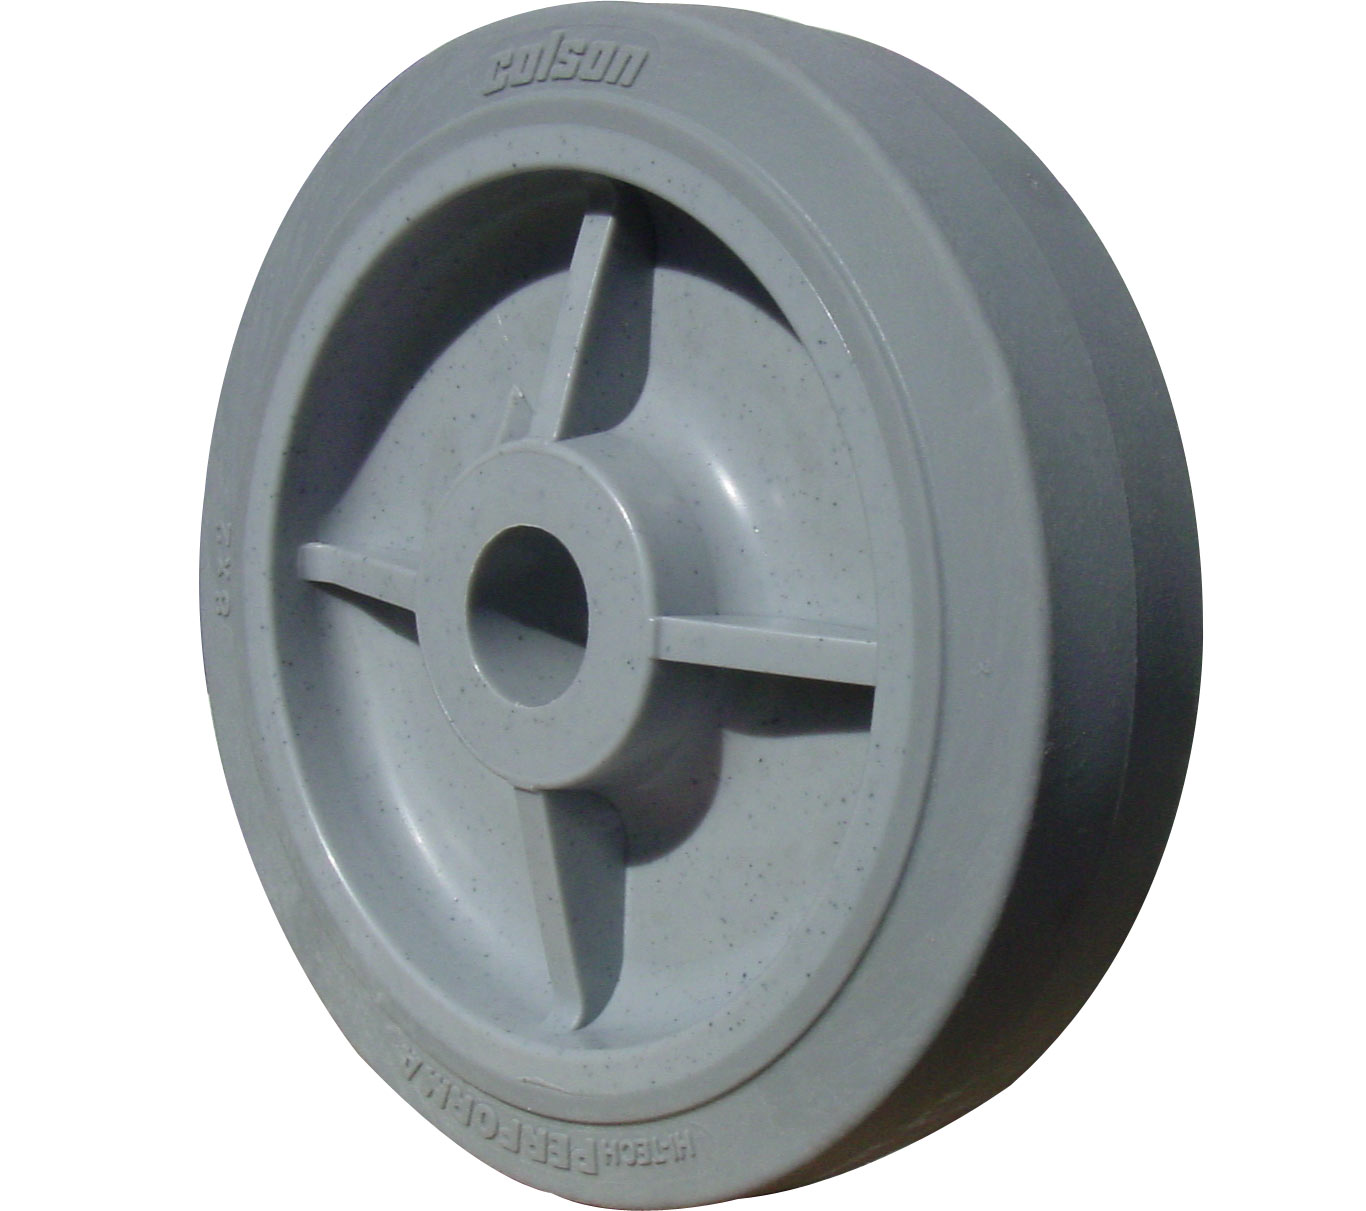 Colson Performa Wheel 8 x 2 grey